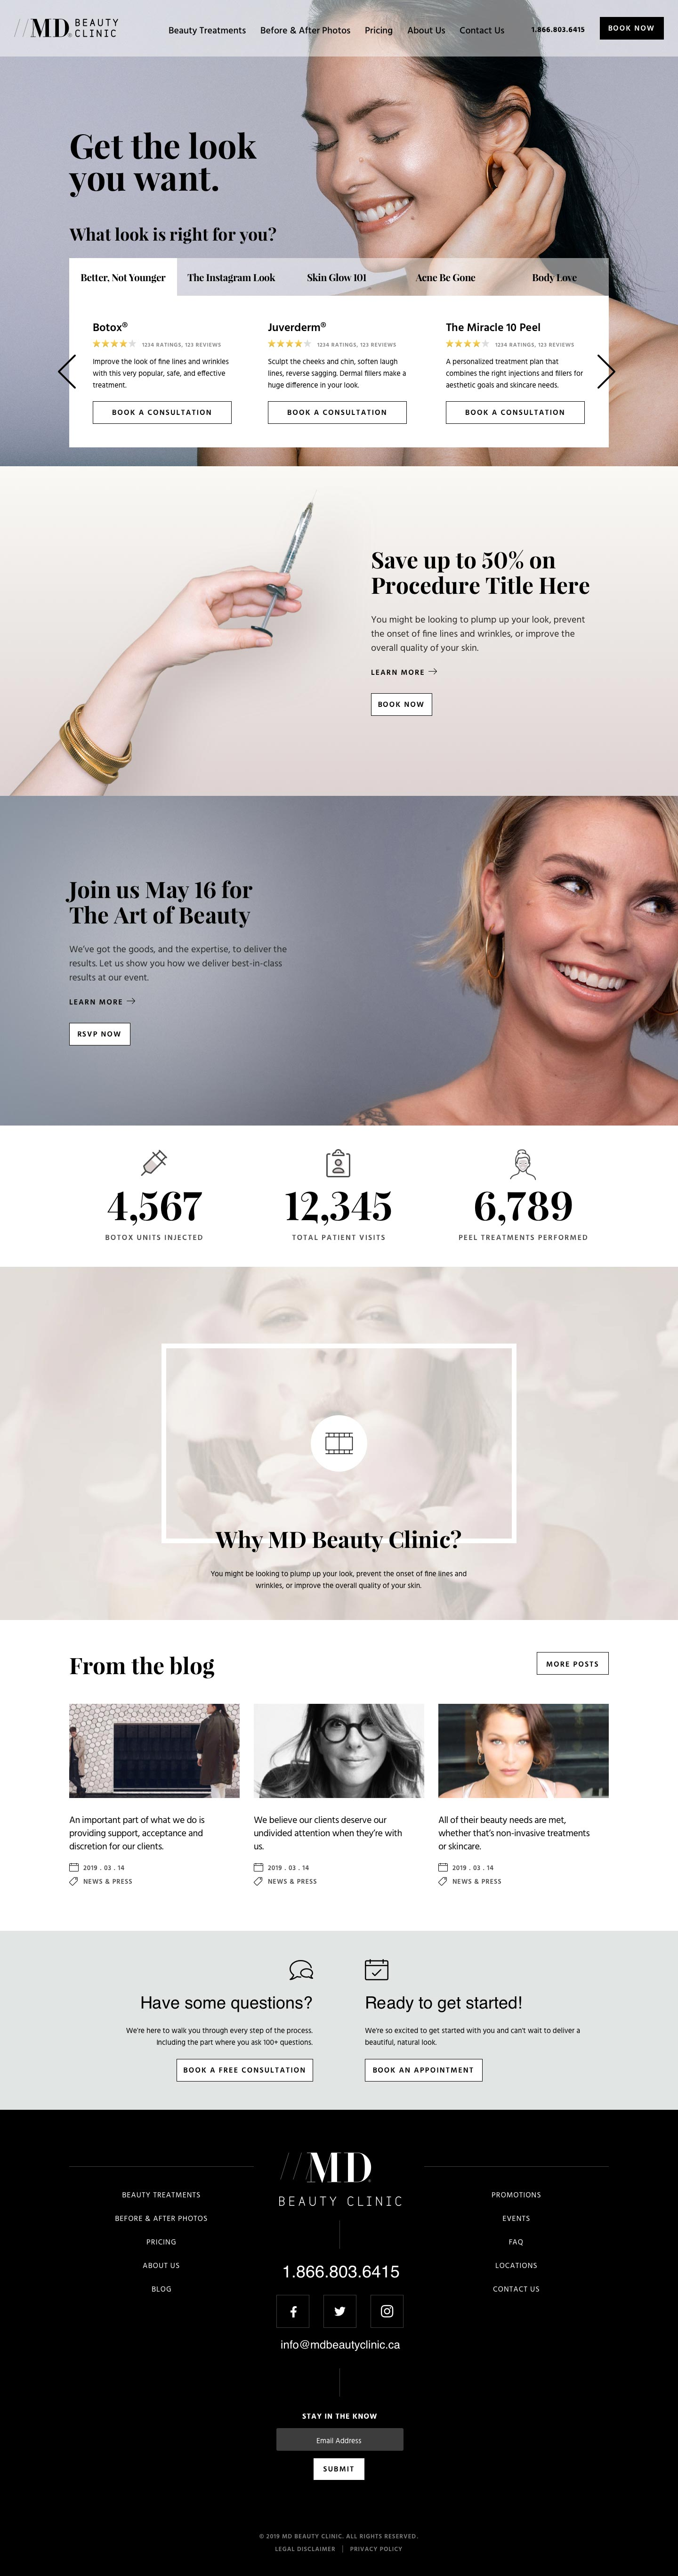 Website Design for Medical Clinic in Toronto - MD Beauty Clinic